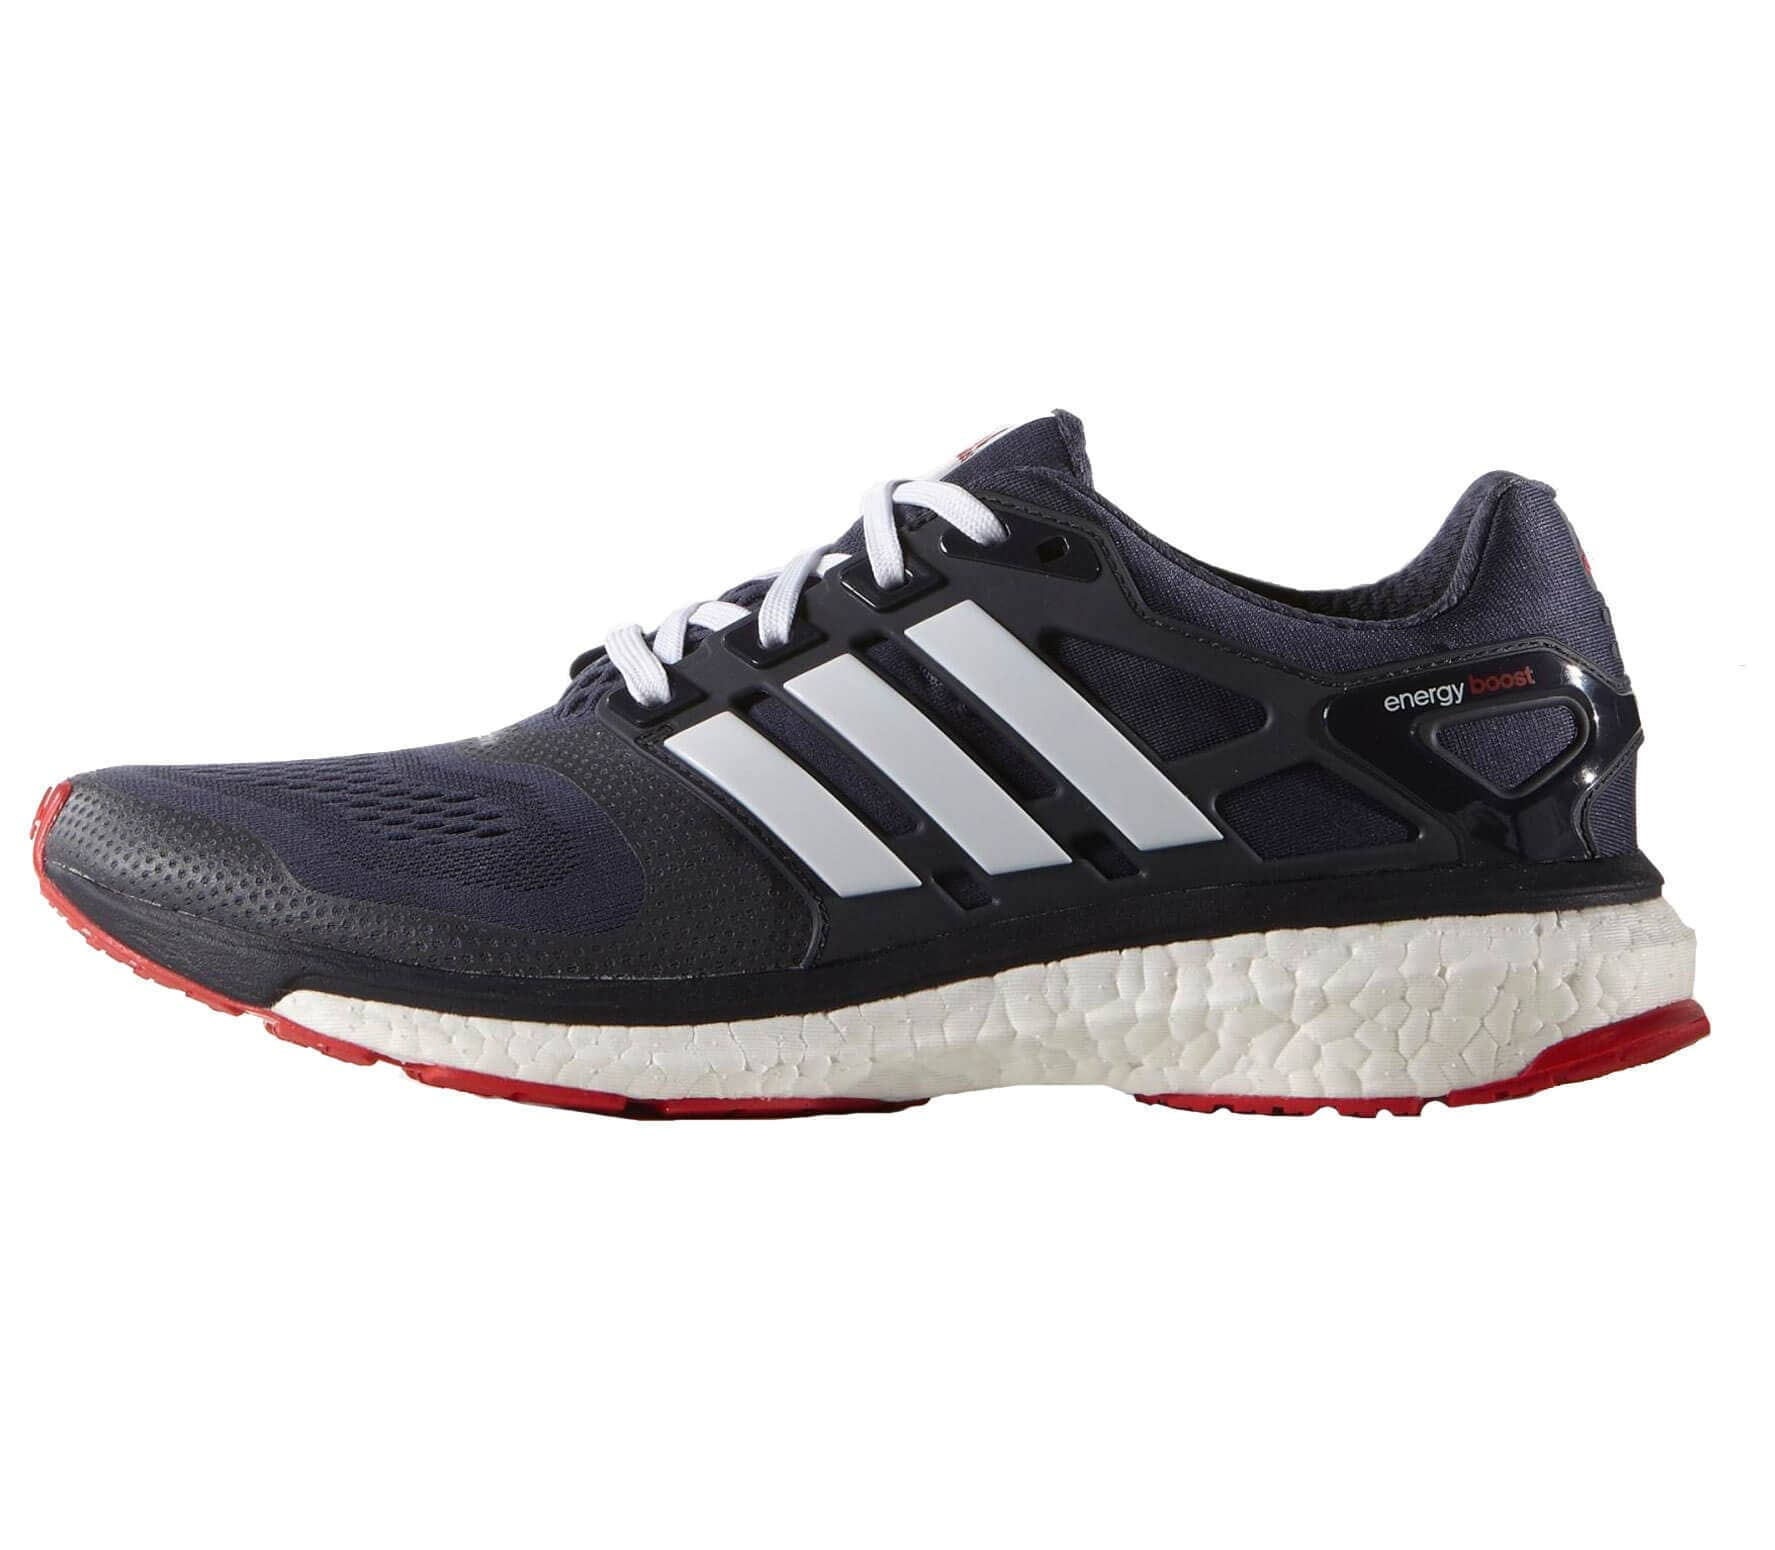 15ab3ea93 Adidas - Energy Boost ESM men s running shoes (grey) - buy it at the ...